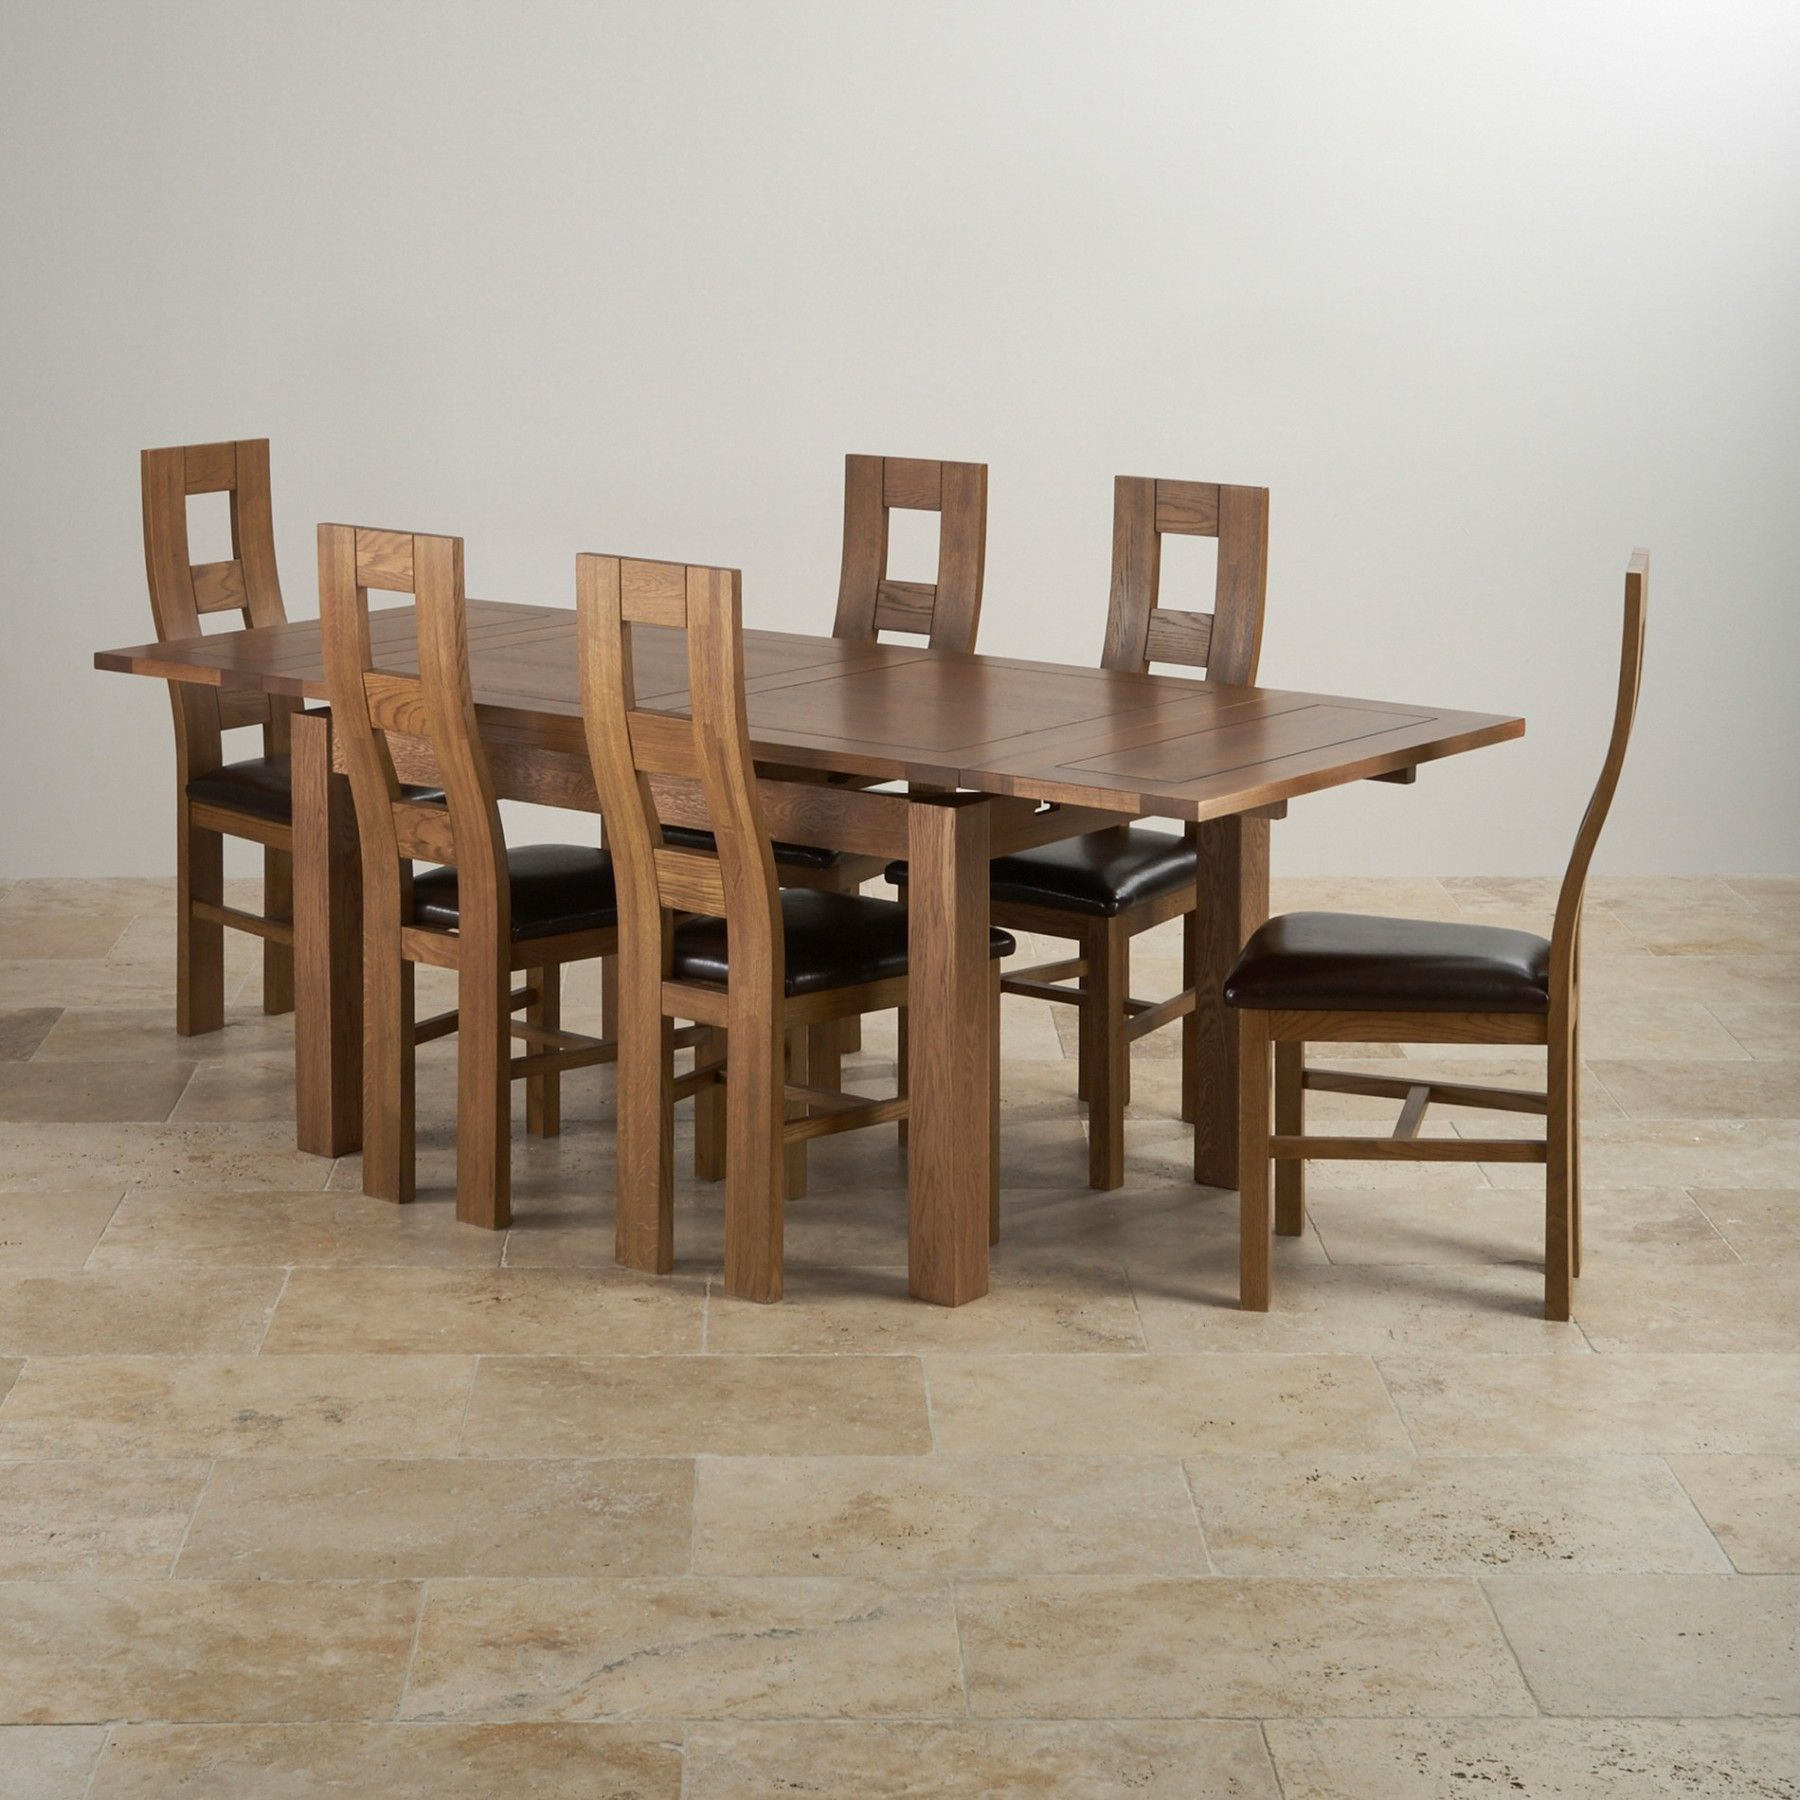 Admirable Rustic Solid Oak Dining Set 4Ft 7 Extending Table With 6 Creativecarmelina Interior Chair Design Creativecarmelinacom